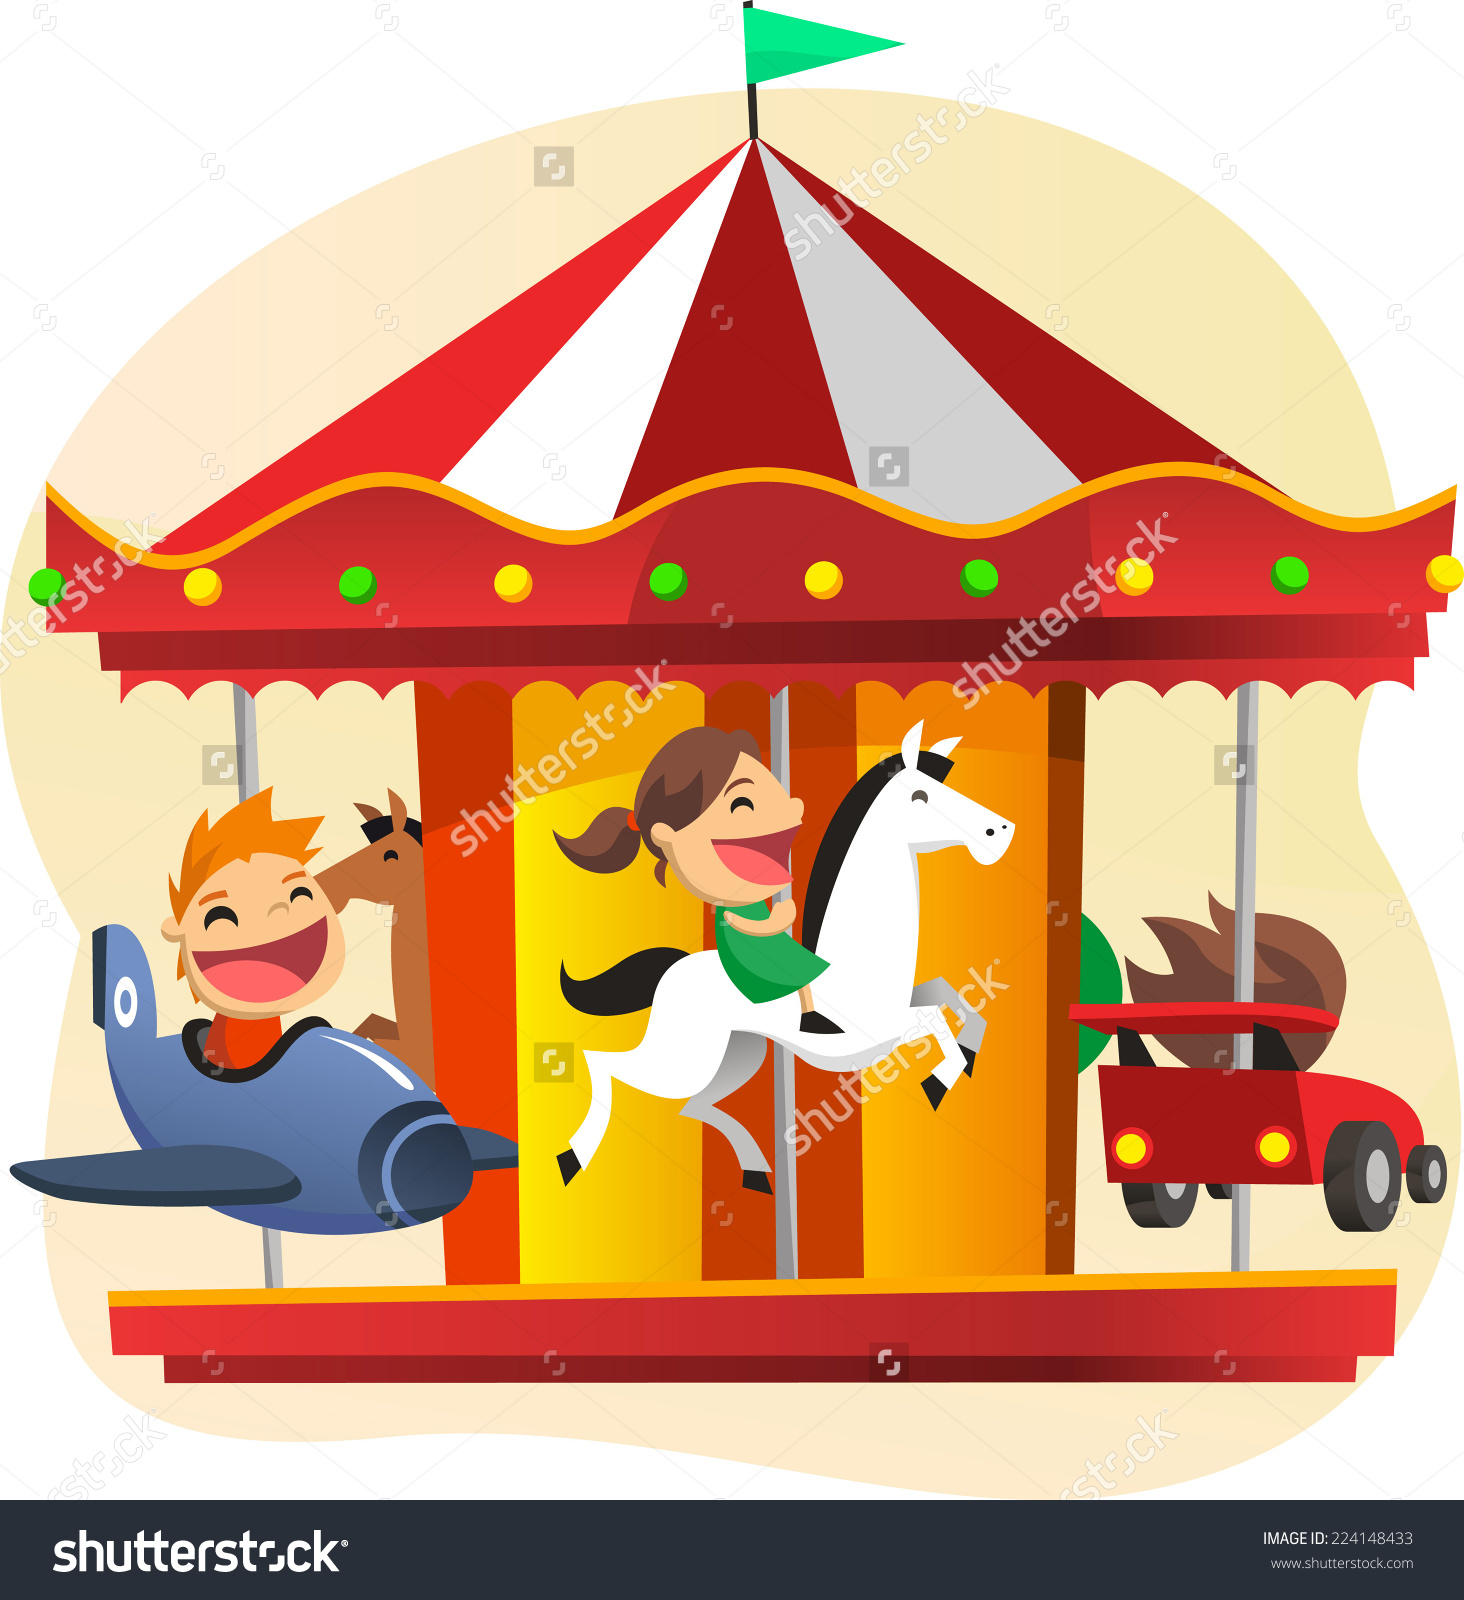 Children Having Fun Merry Go Round Stock Vector 224148433.